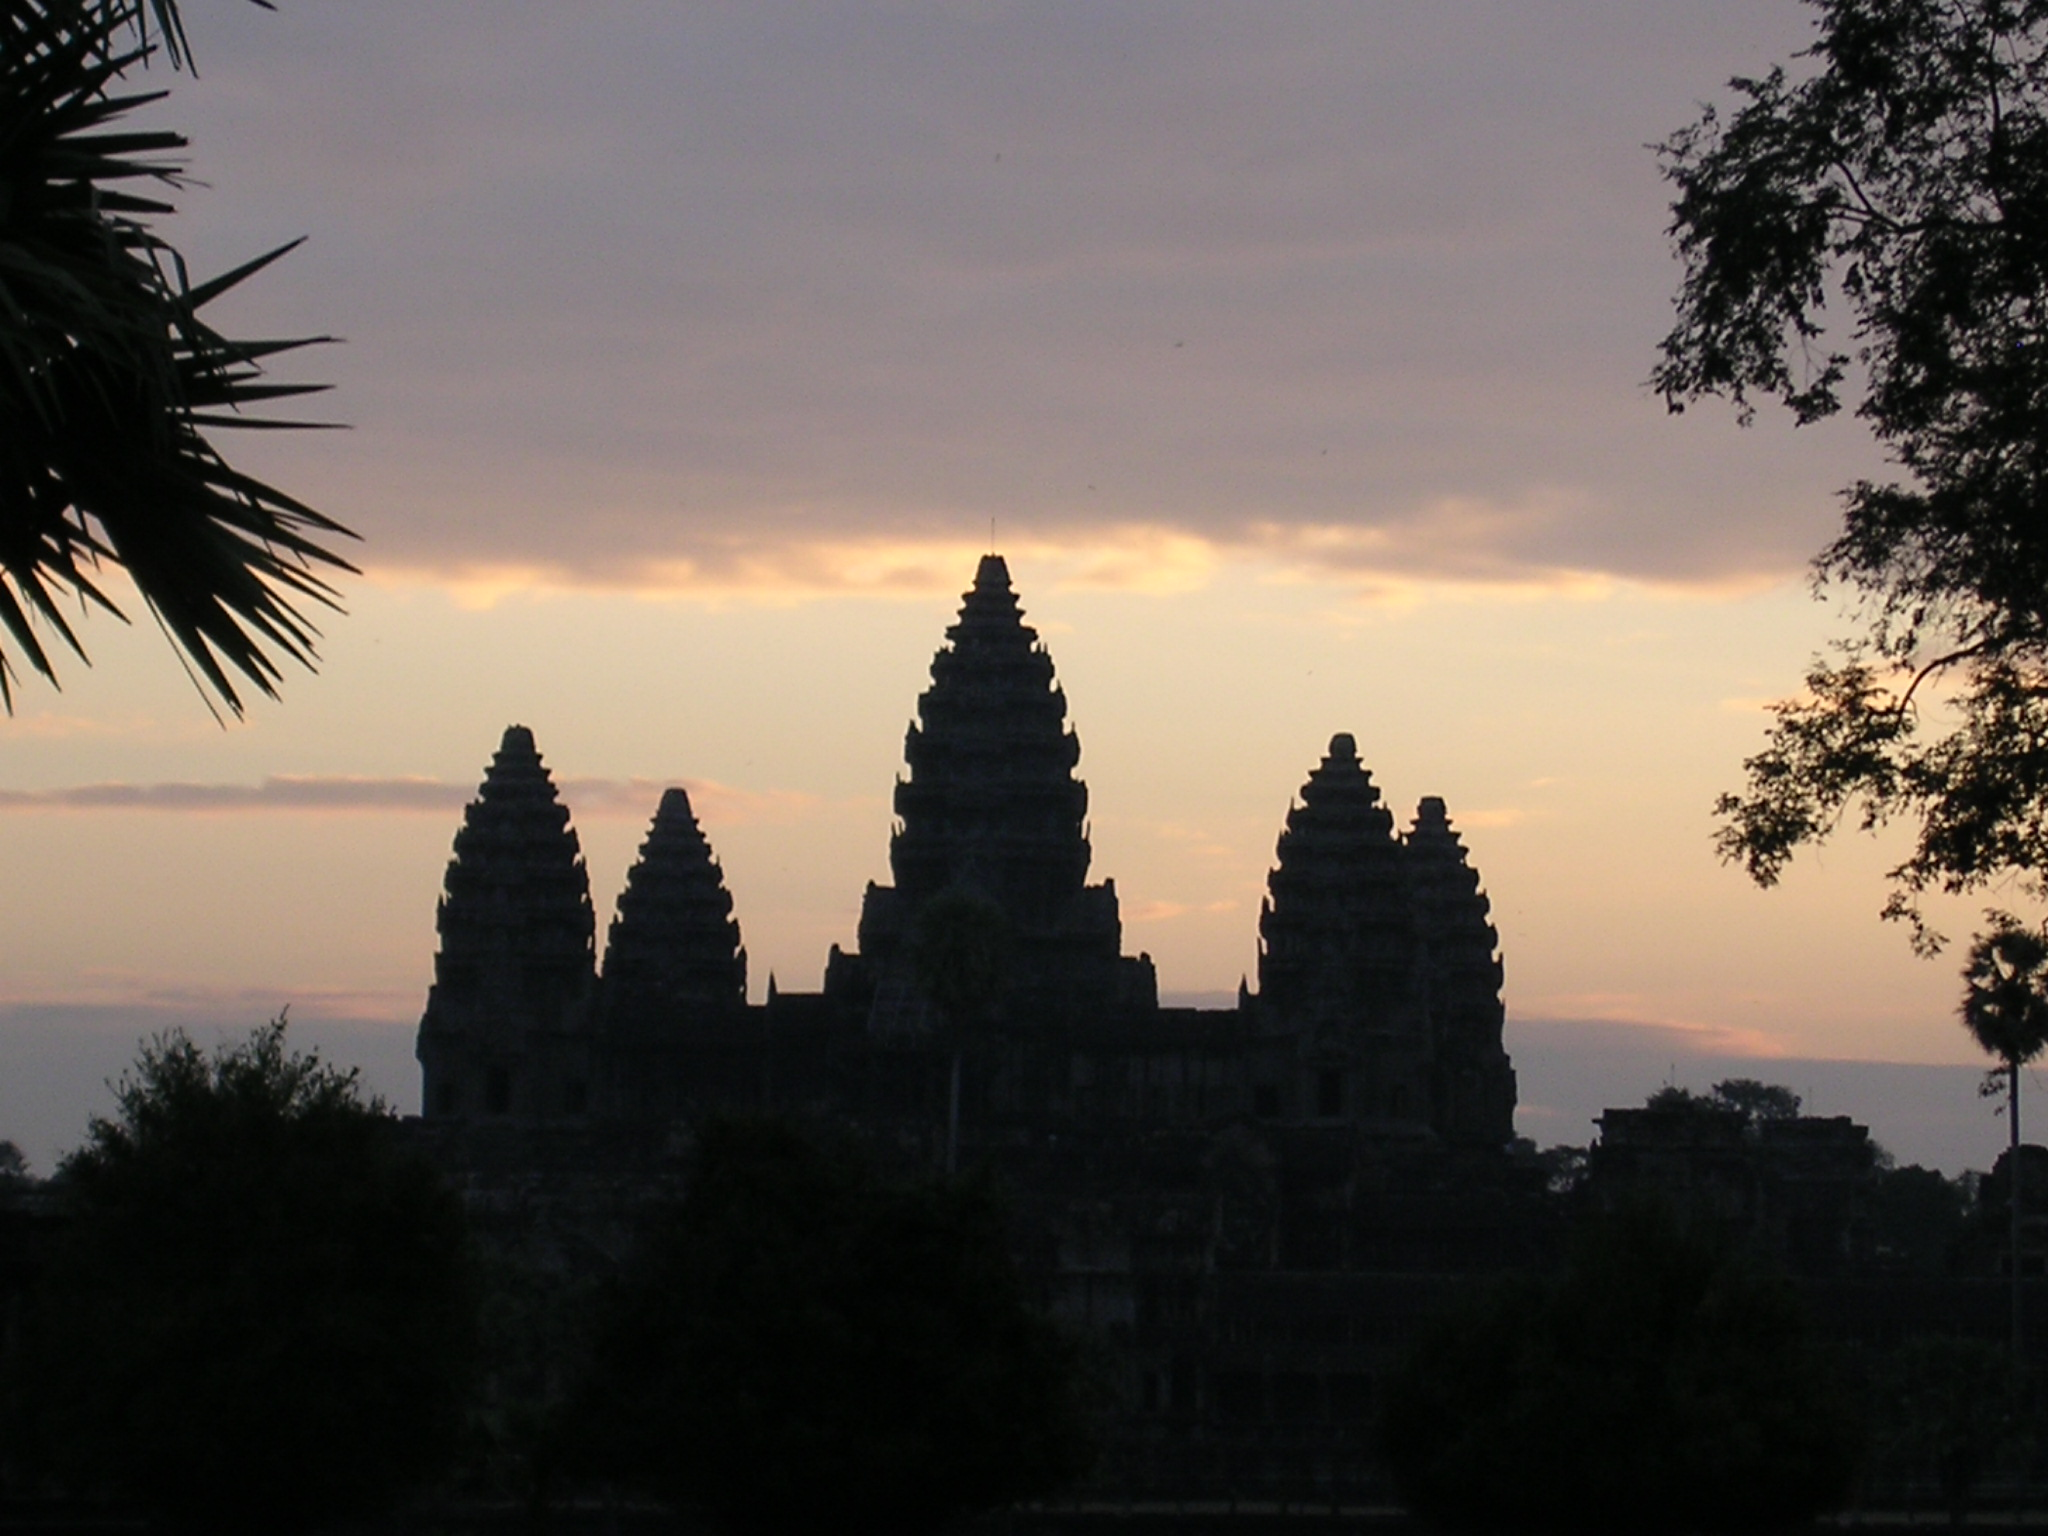 Angkor Wat temples at dawn in Cambodia memorable travel experience